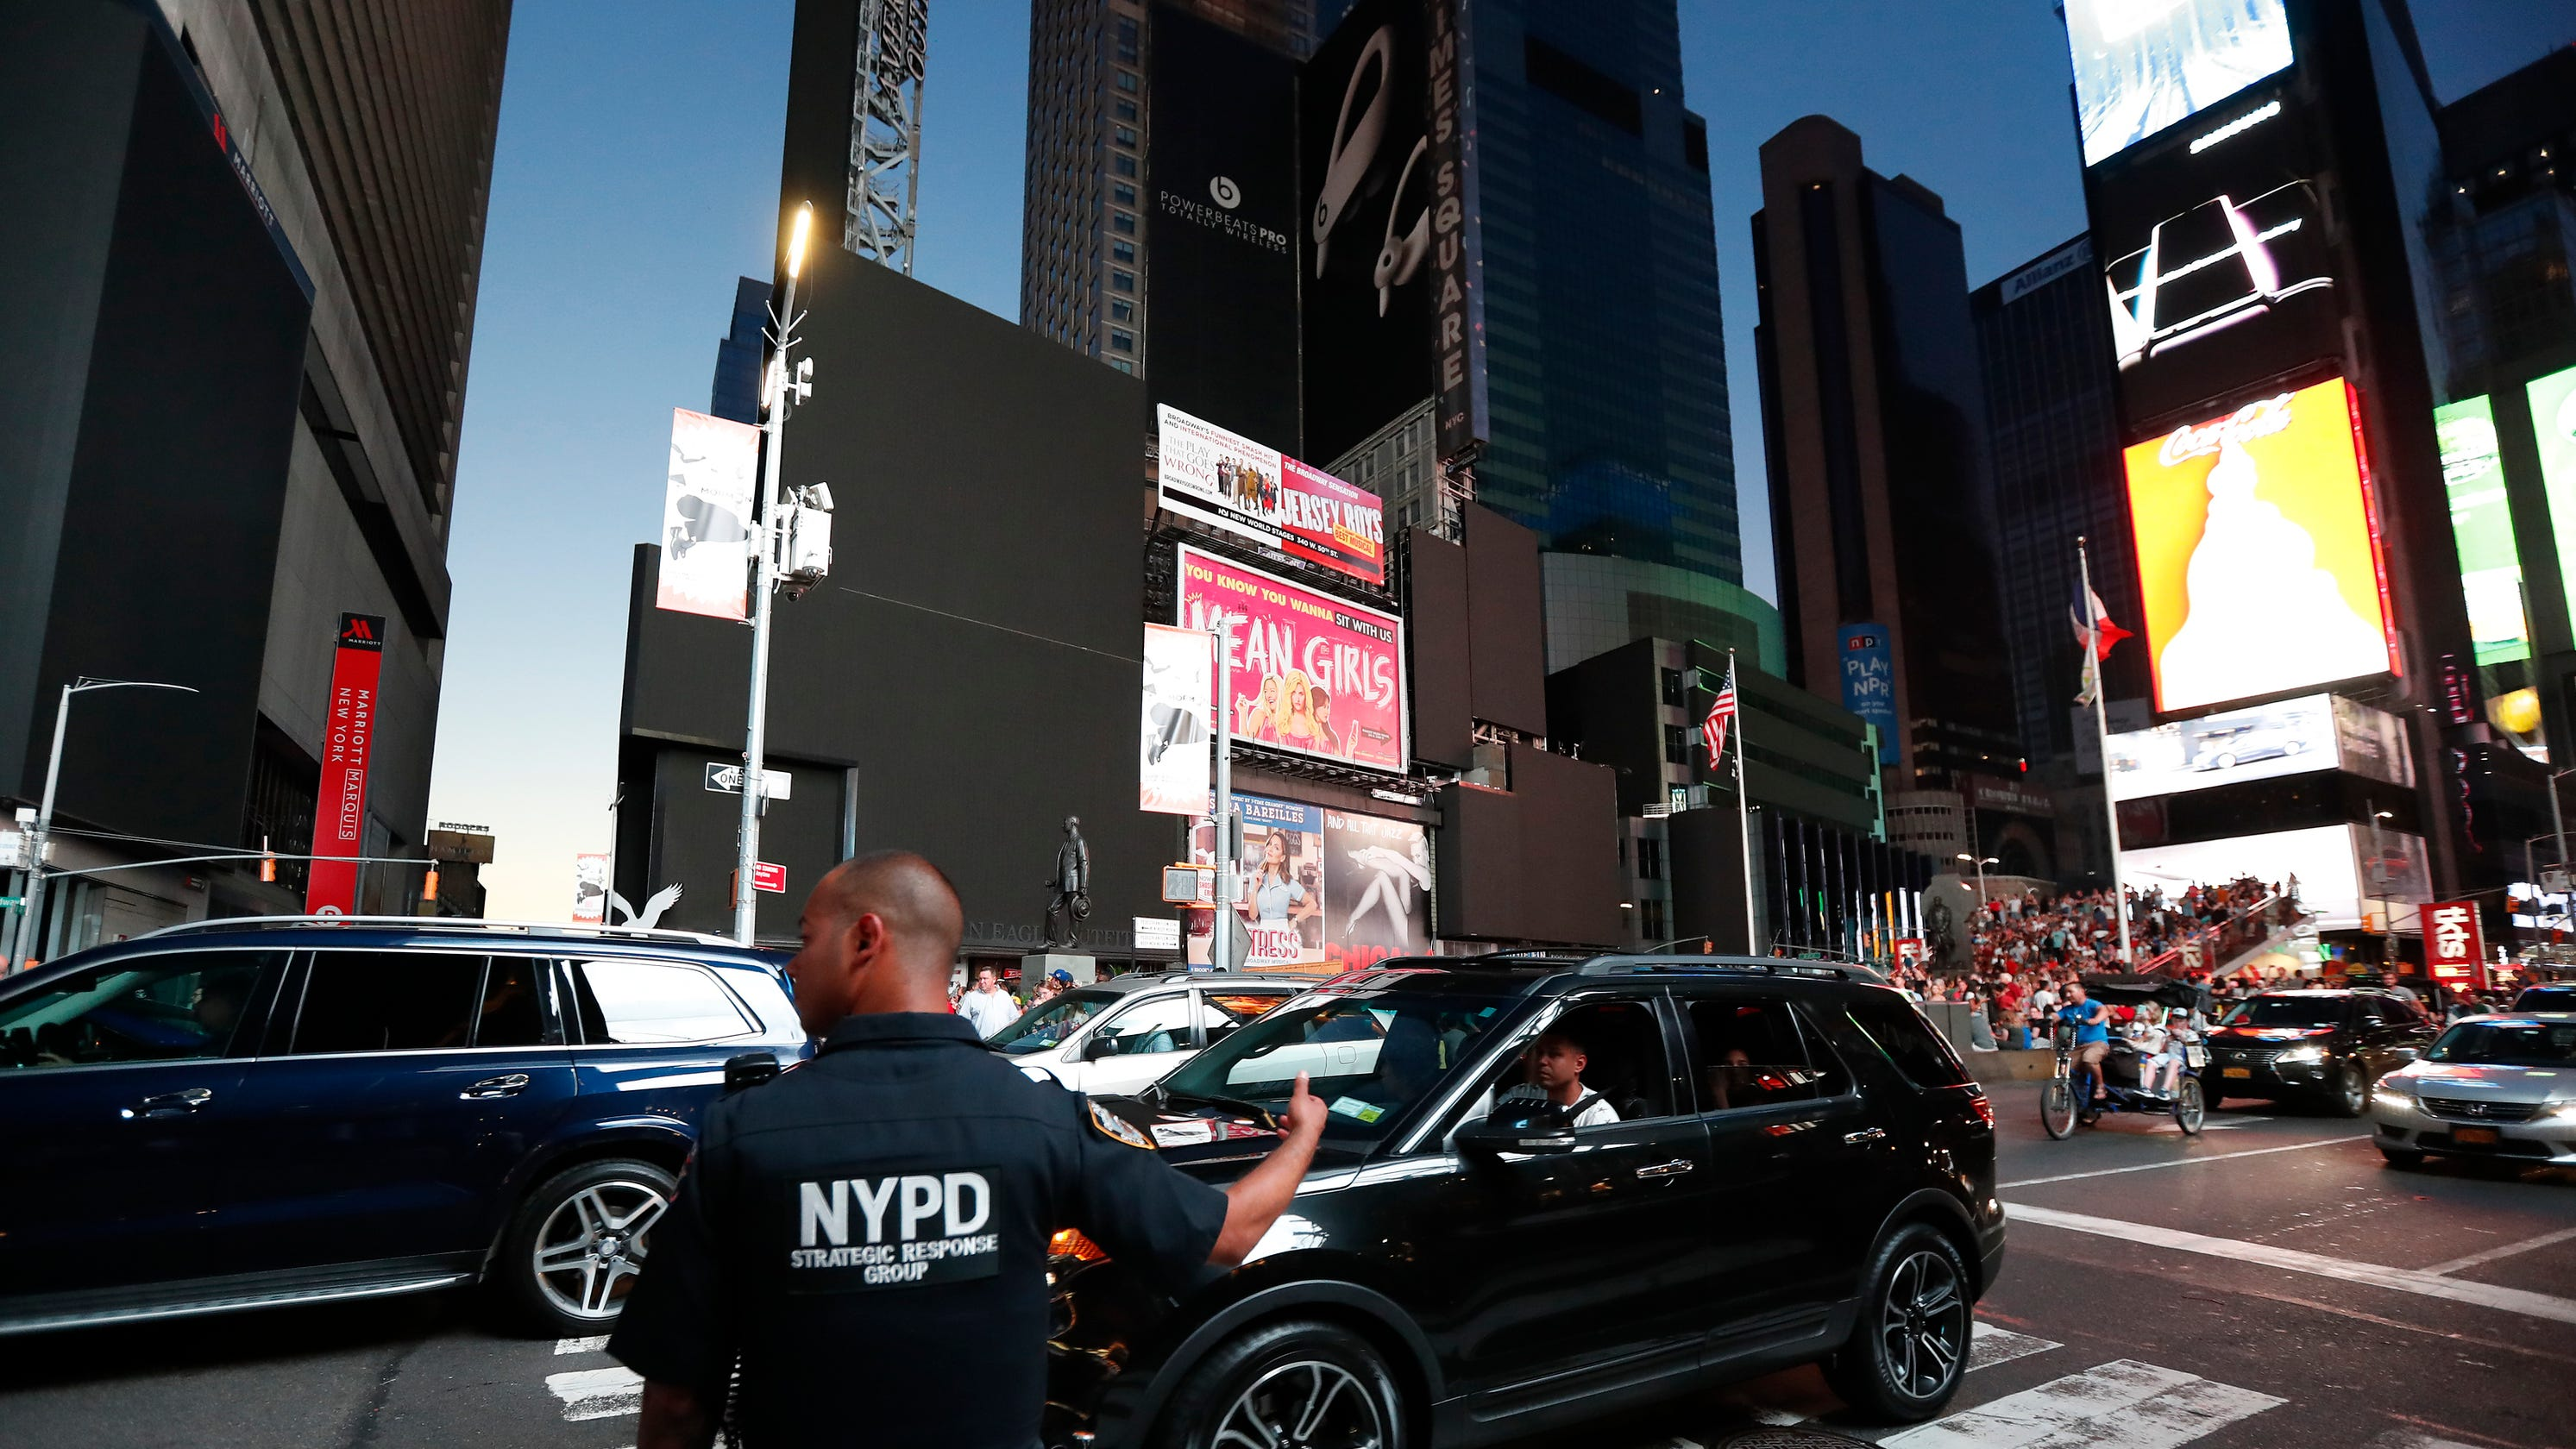 Westlake Legal Group 56e9d026-cd7c-4646-856c-327d8aba228c-AP_New_York_Power_Outage_2 New York City power outage: Here's what we know about the widespread blackout